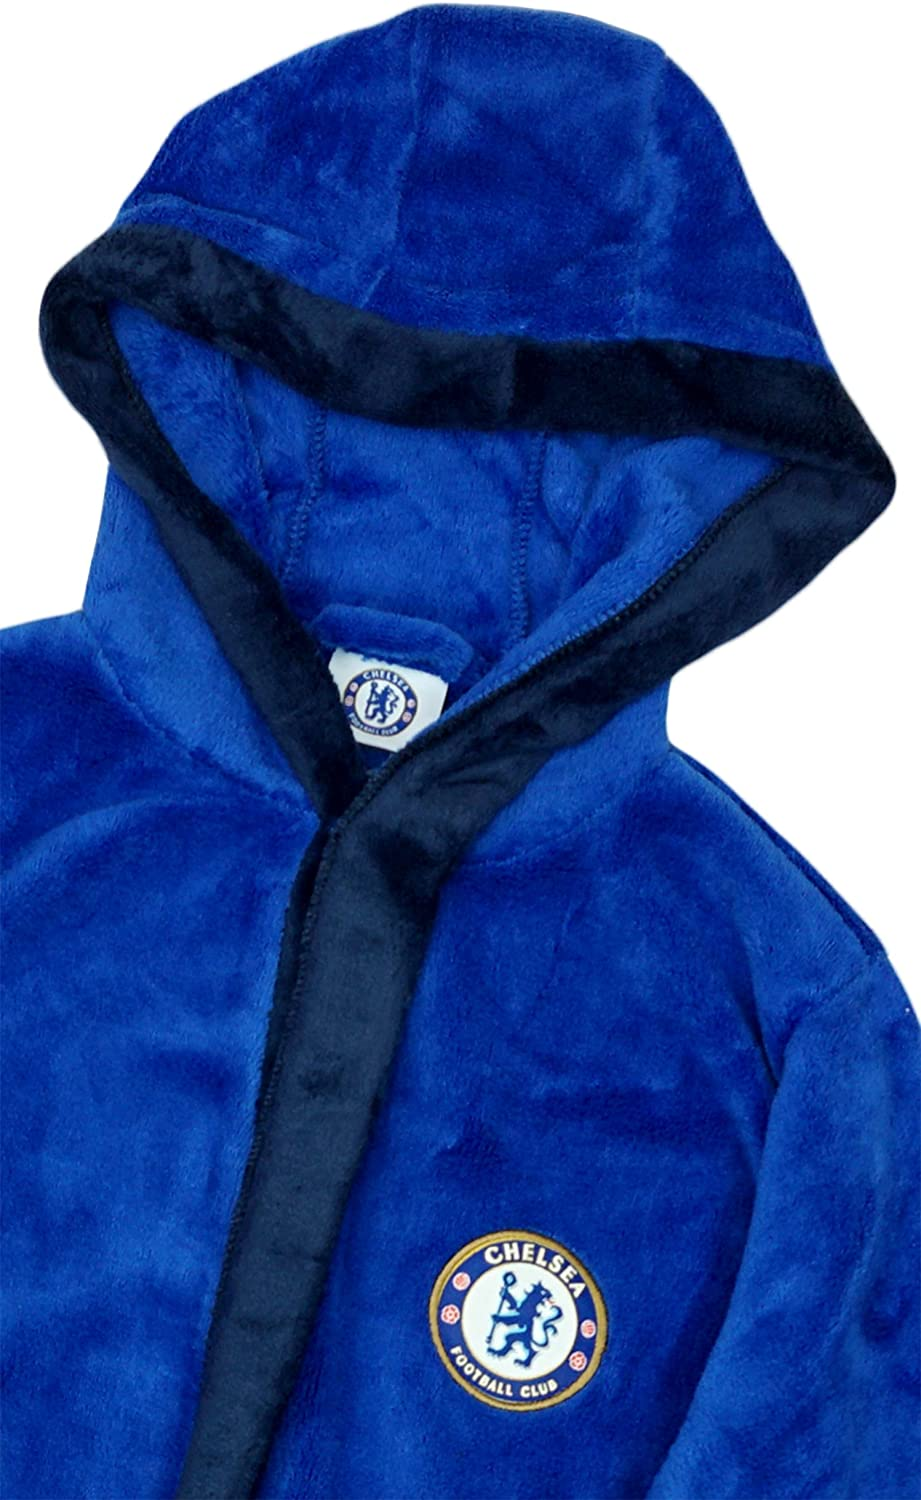 Get Wivvit Boys Chelsea CFC Football Fleece Hooded Dressing Gown Bathrobe Sizes from 3 to 6 Years